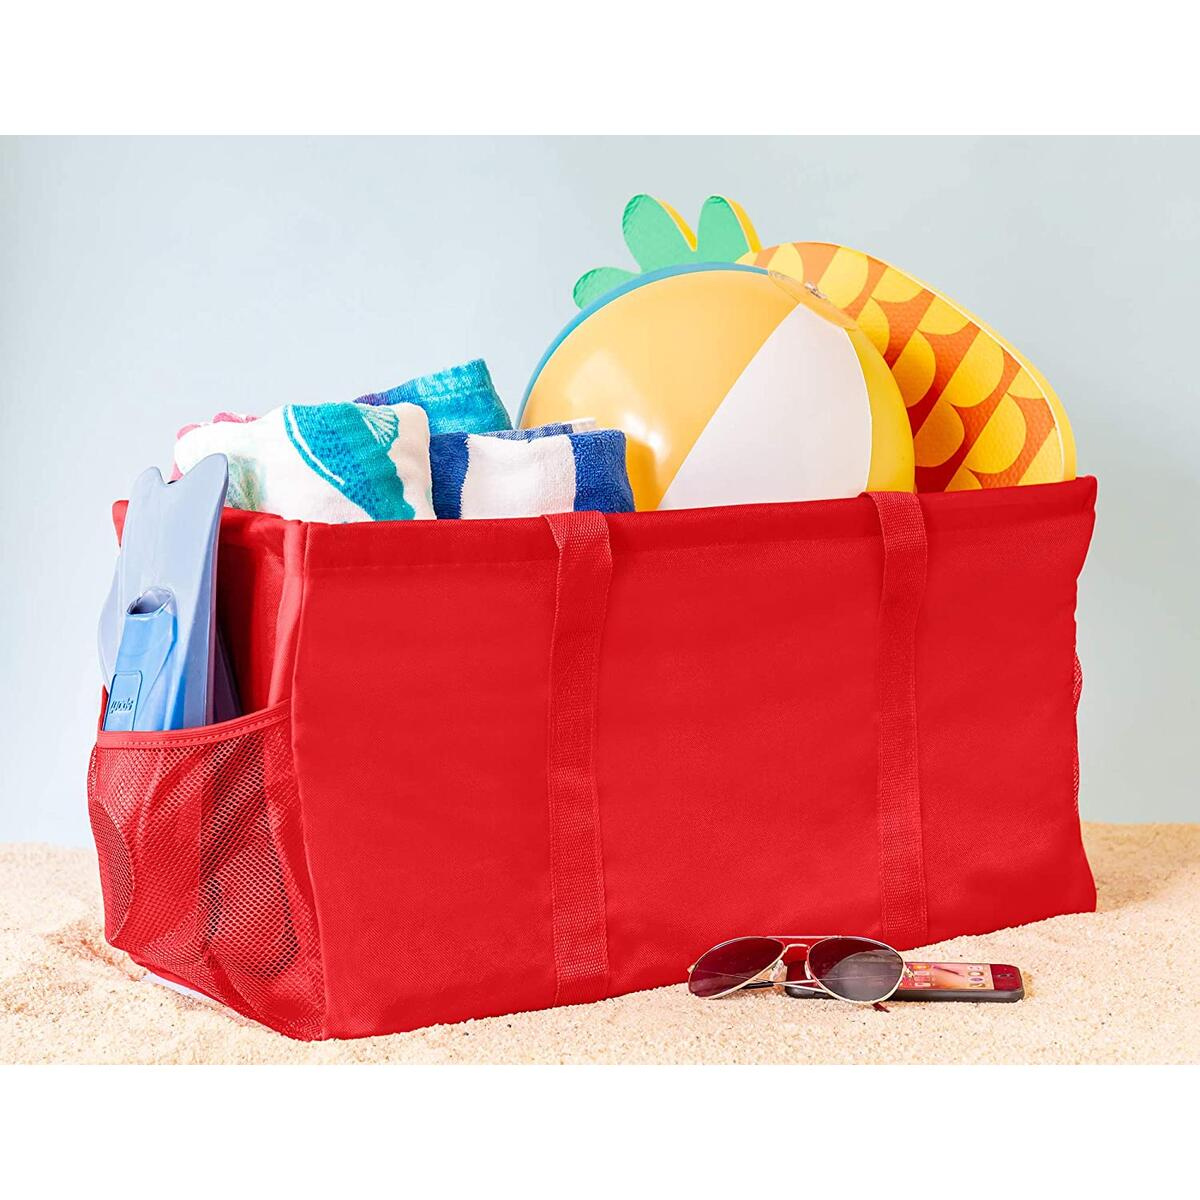 Extra Large Utility Tote Bag - Red